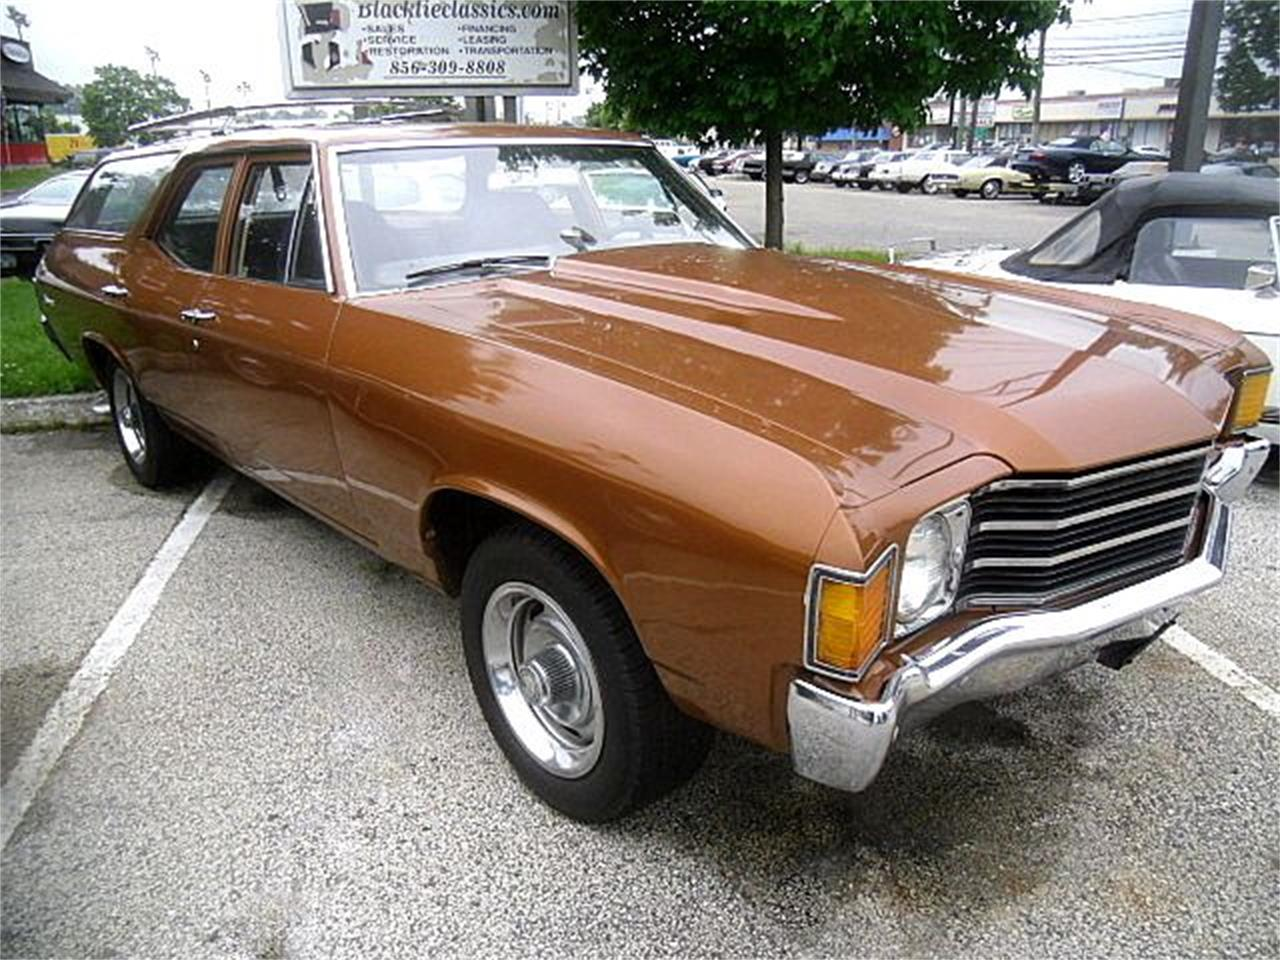 1972 Chevrolet Chevelle (CC-1135812) for sale in Stratford, New Jersey